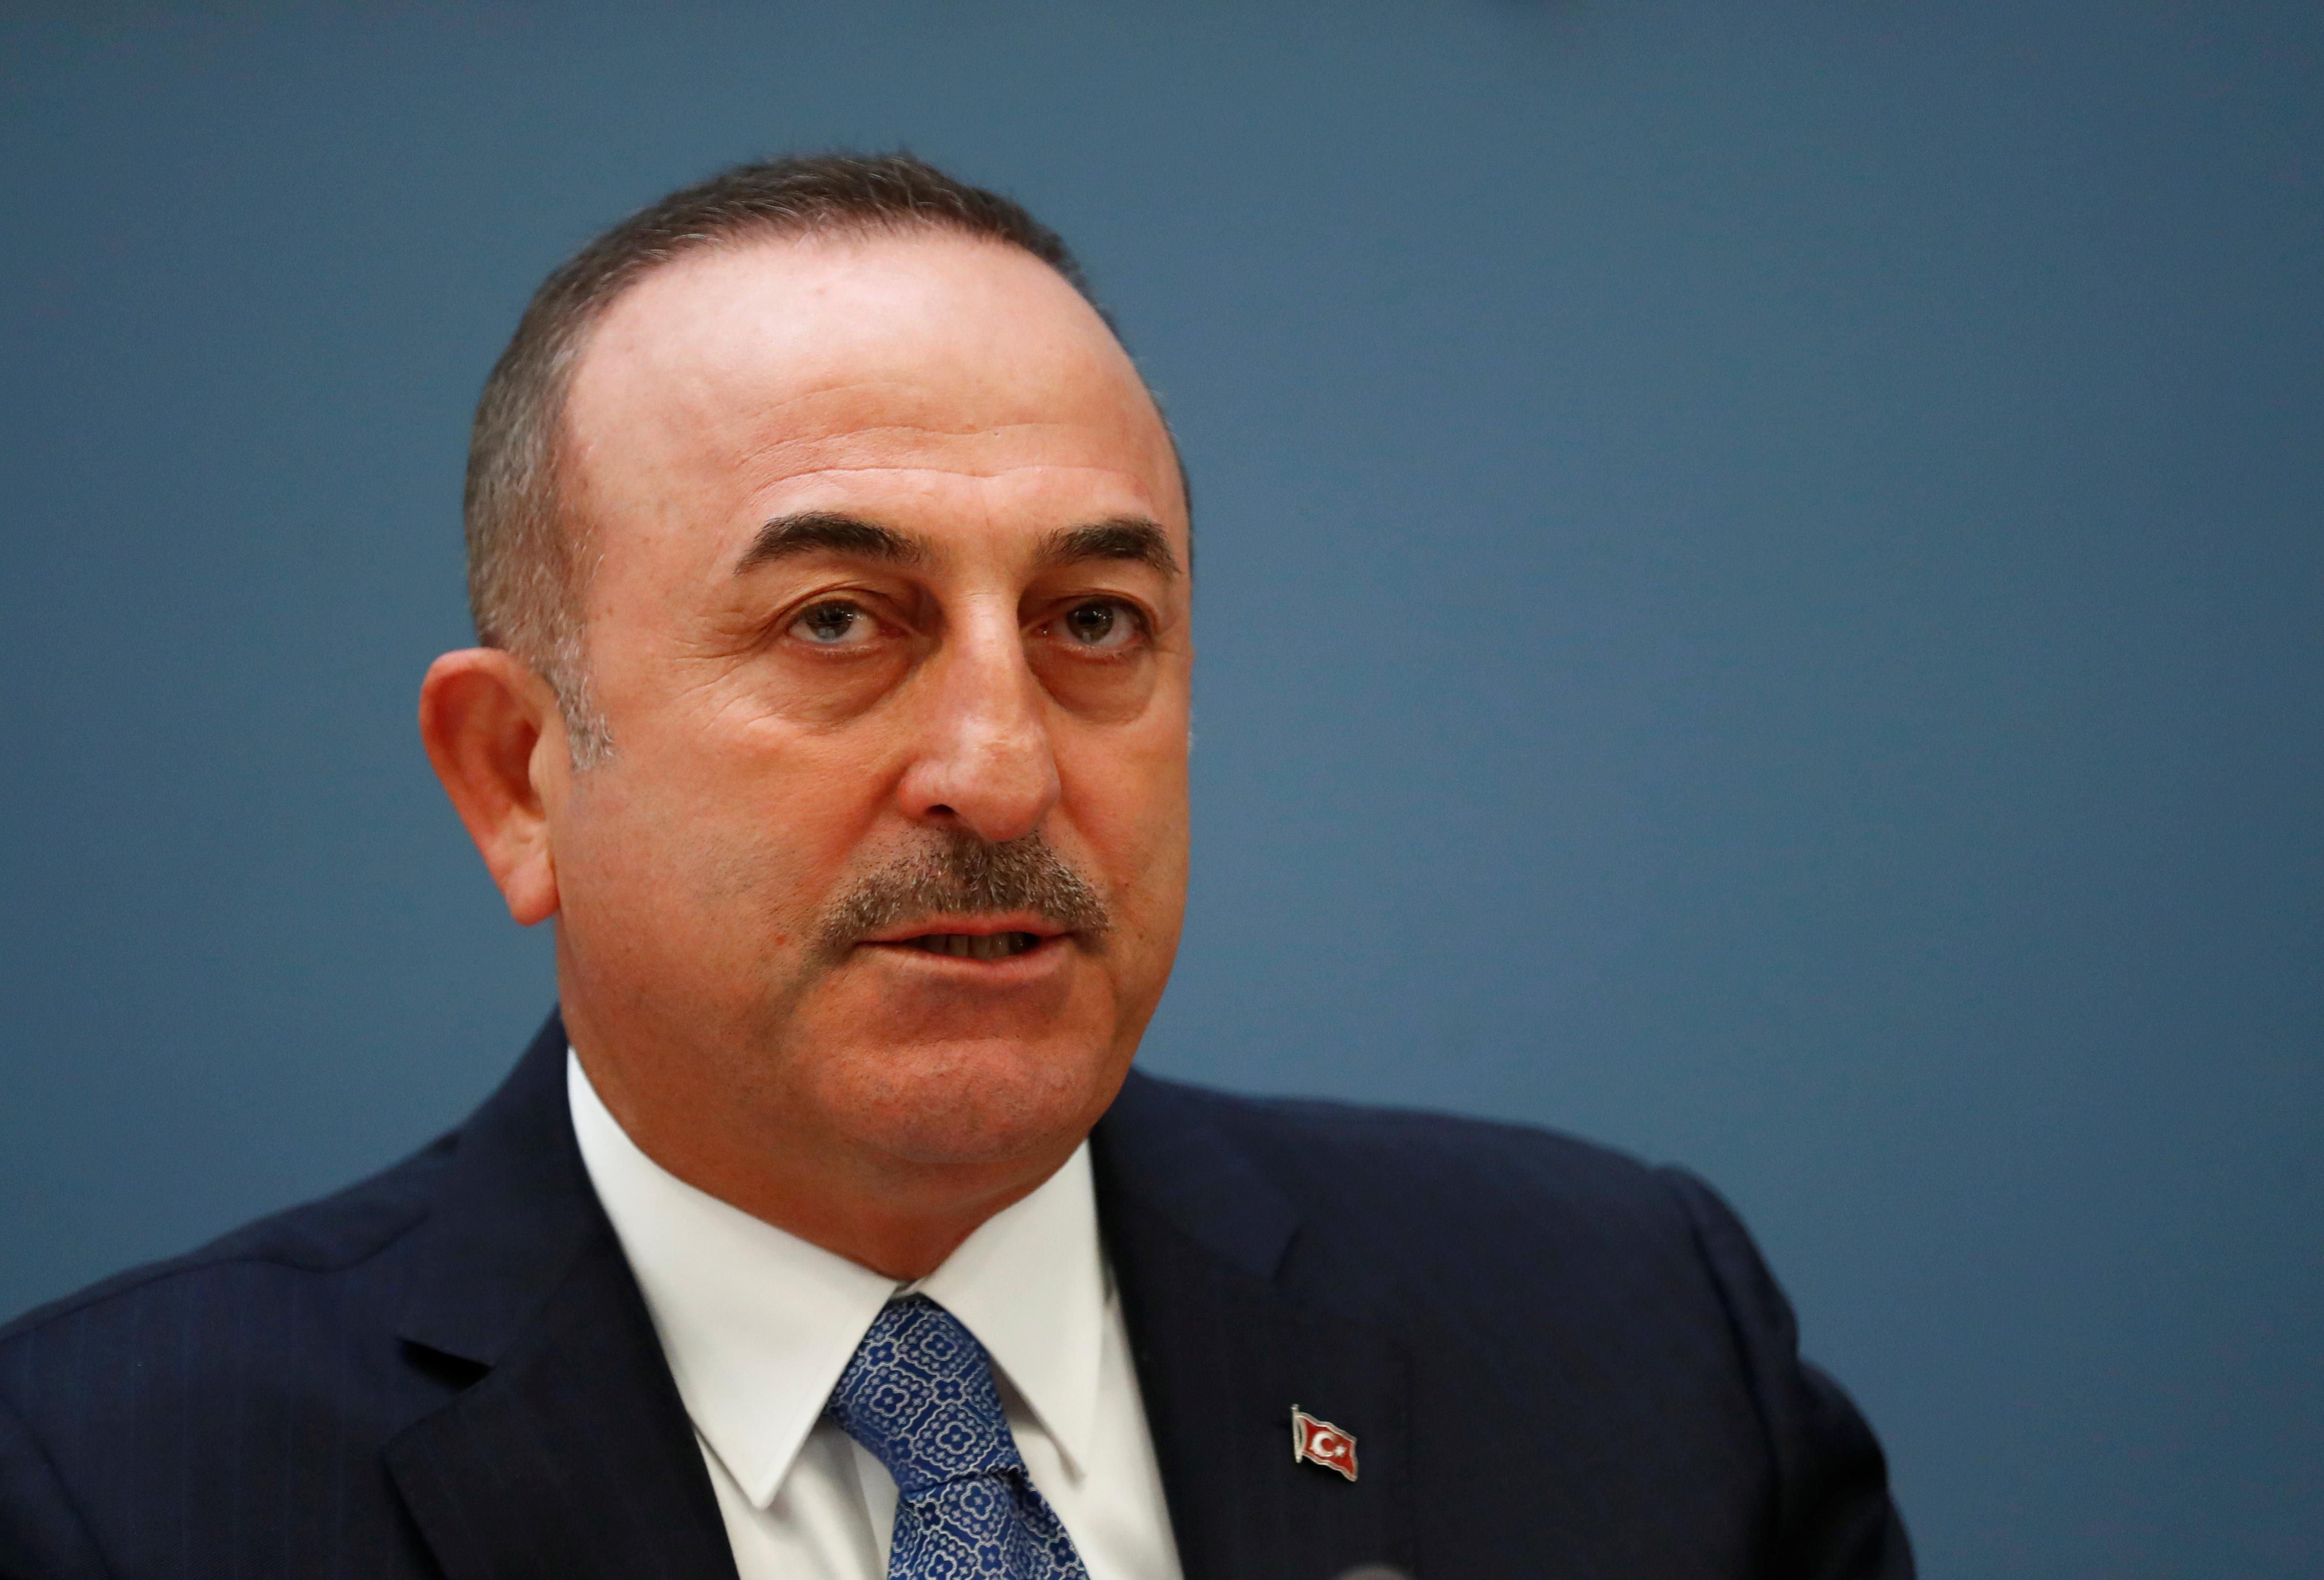 Turkey says Israel becoming 'racist, apartheid regime' with annexation plan